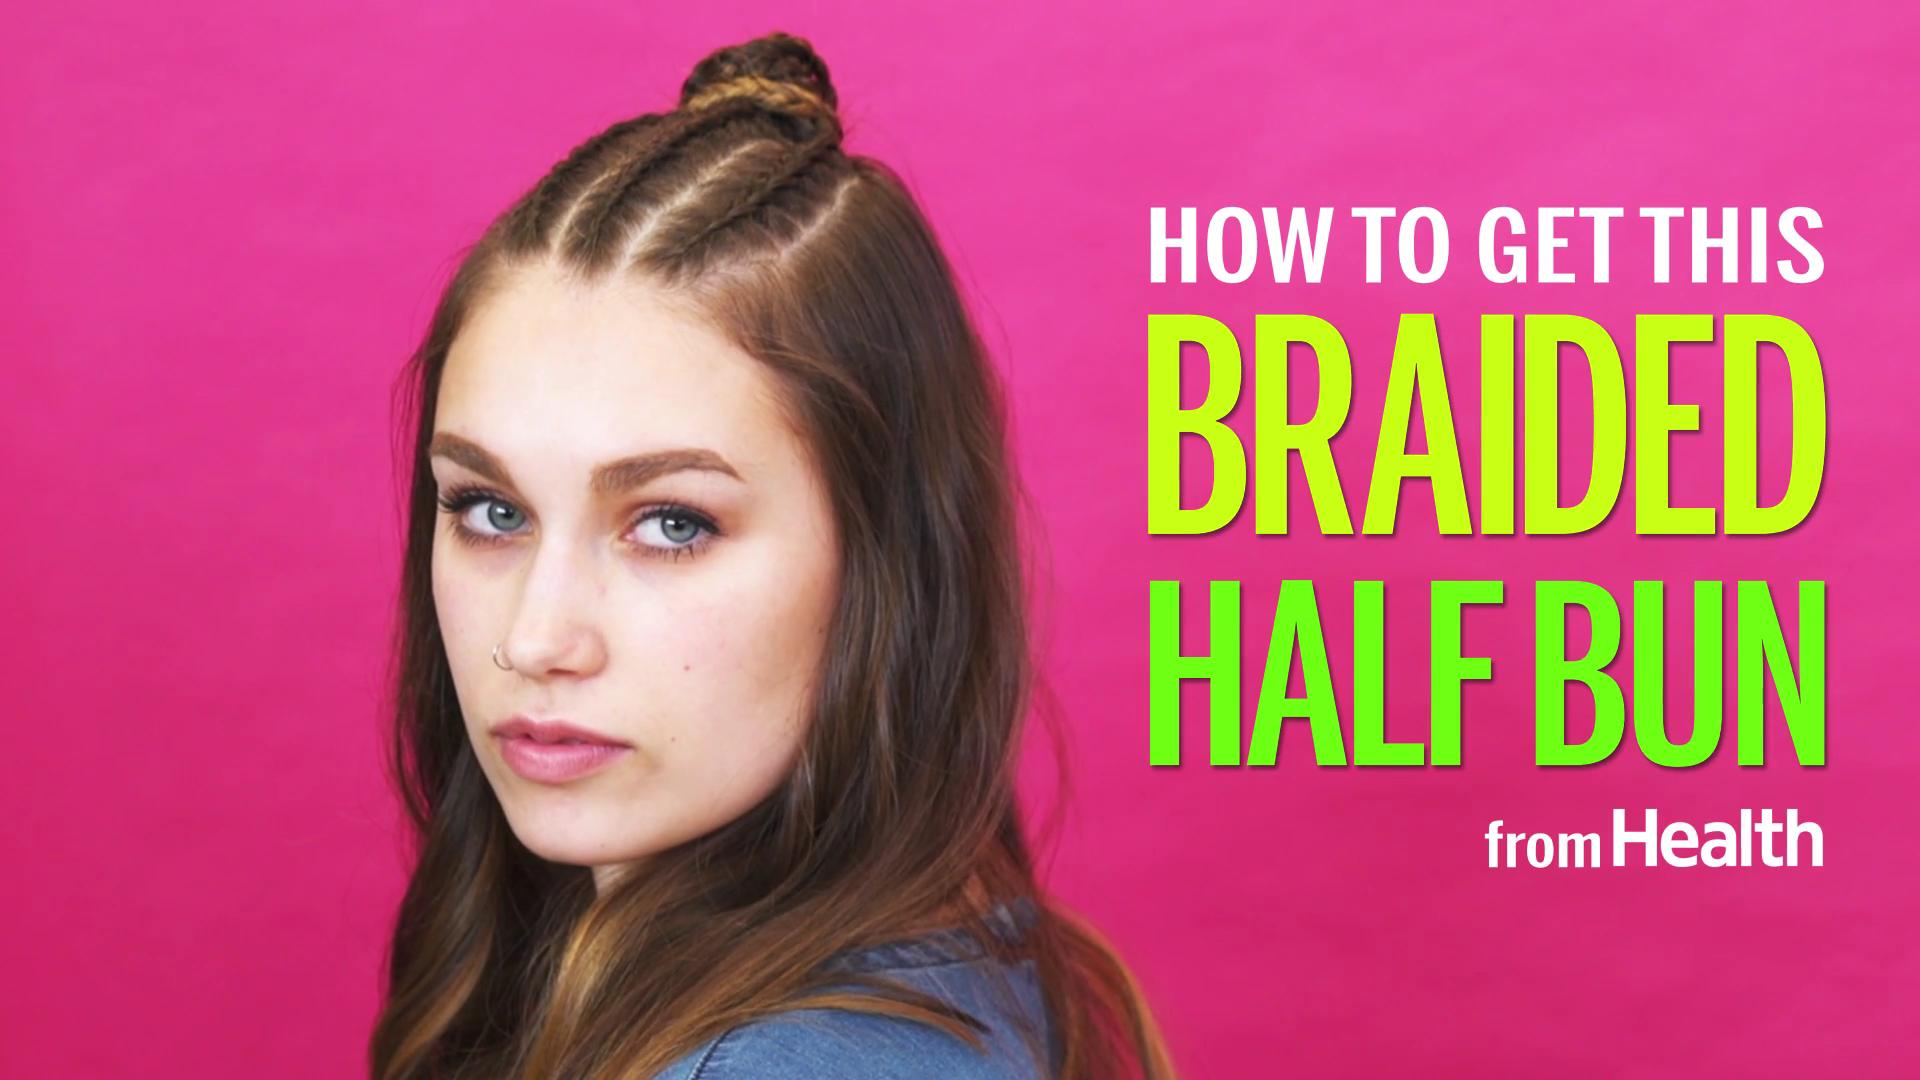 How to do a braided half bun